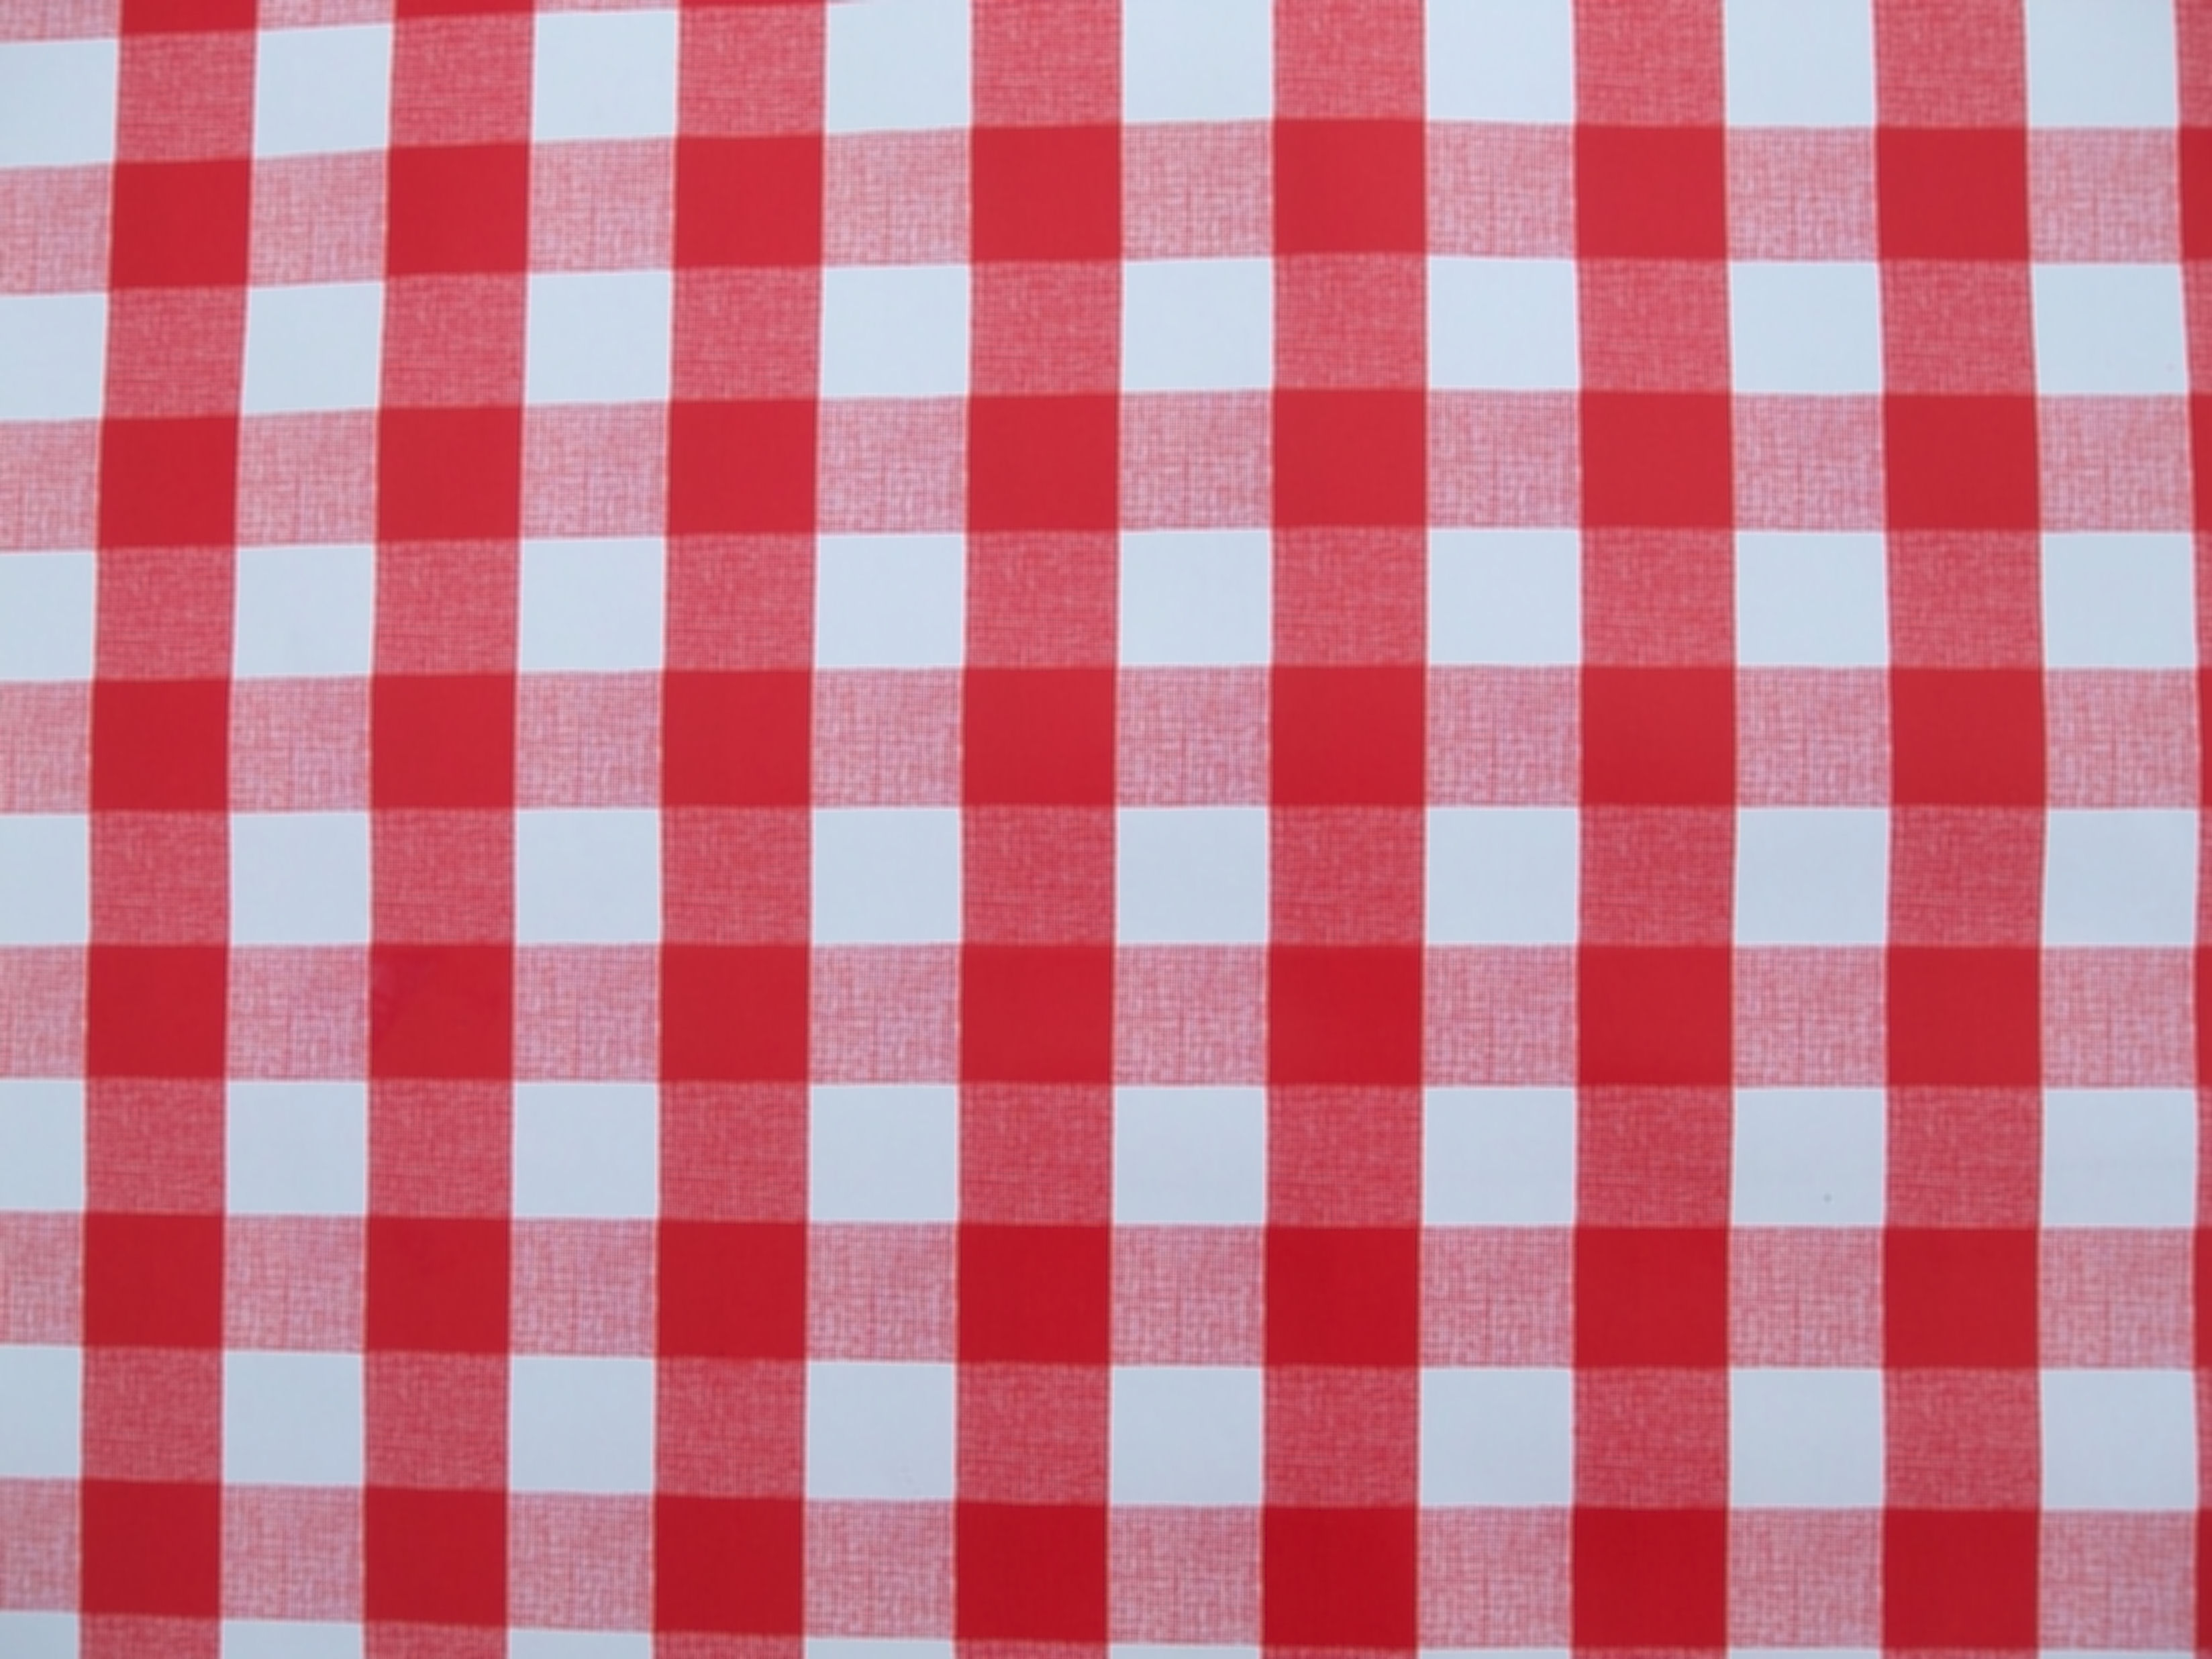 Table Cloth S5d8 Square Wipe Clean Tablecloth with Parasol Hole Red Gingham the